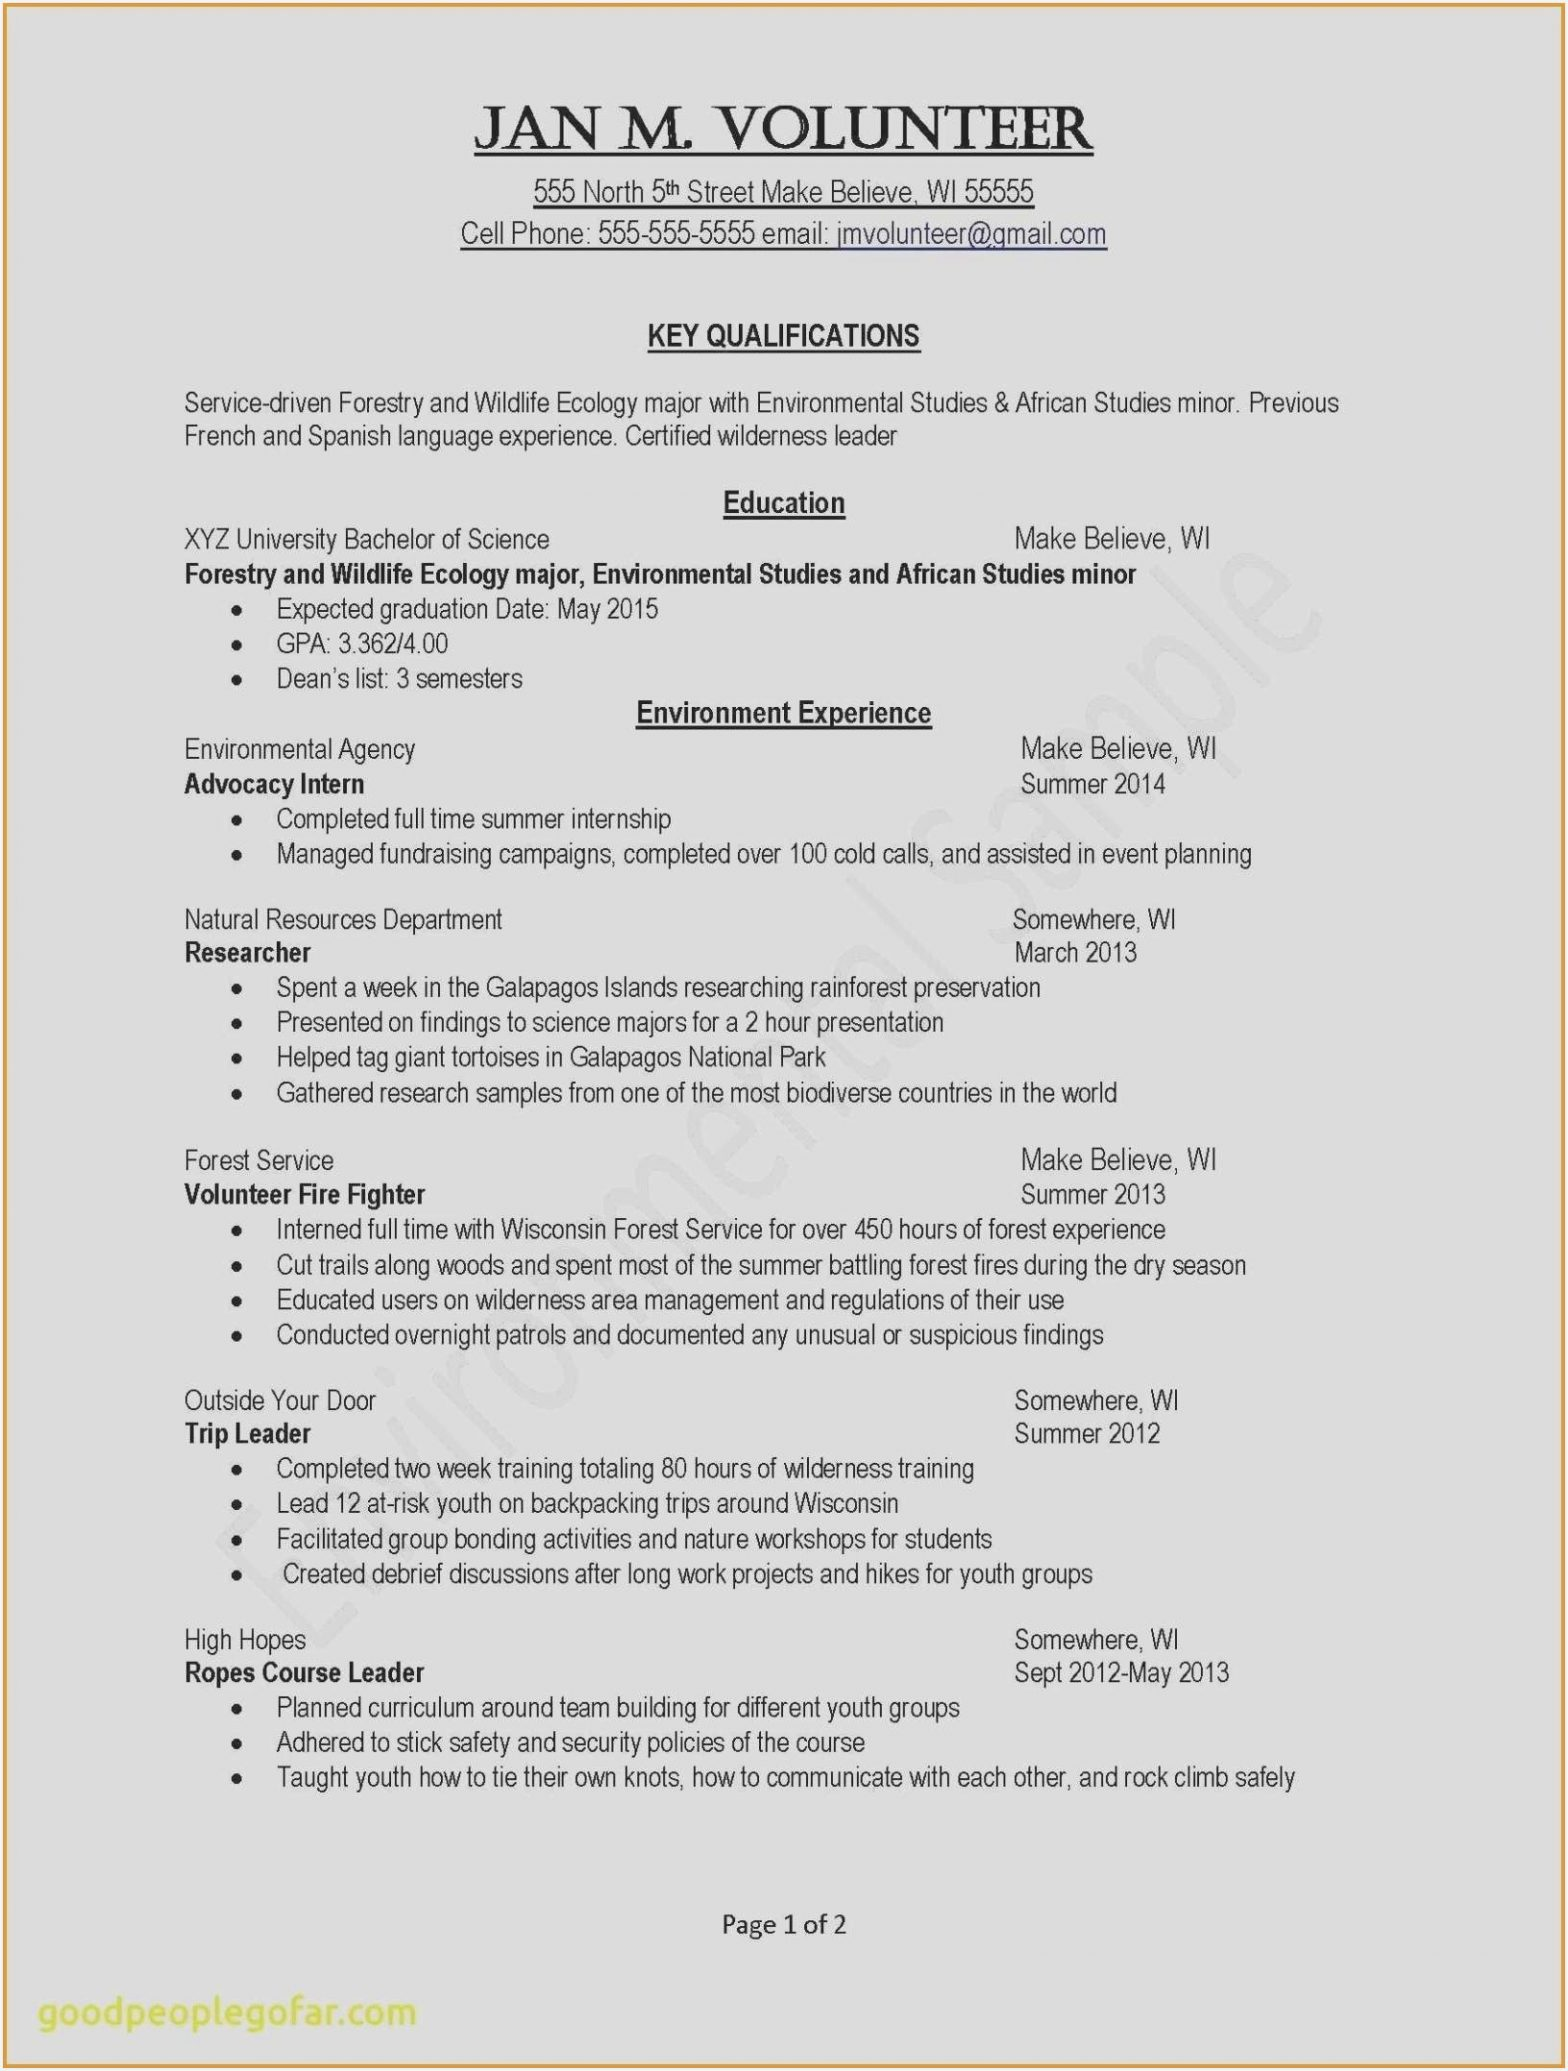 Sample Resume for Security Guard Philippines Sample Resume for Security Guard Philippines - Resume : Resume ...